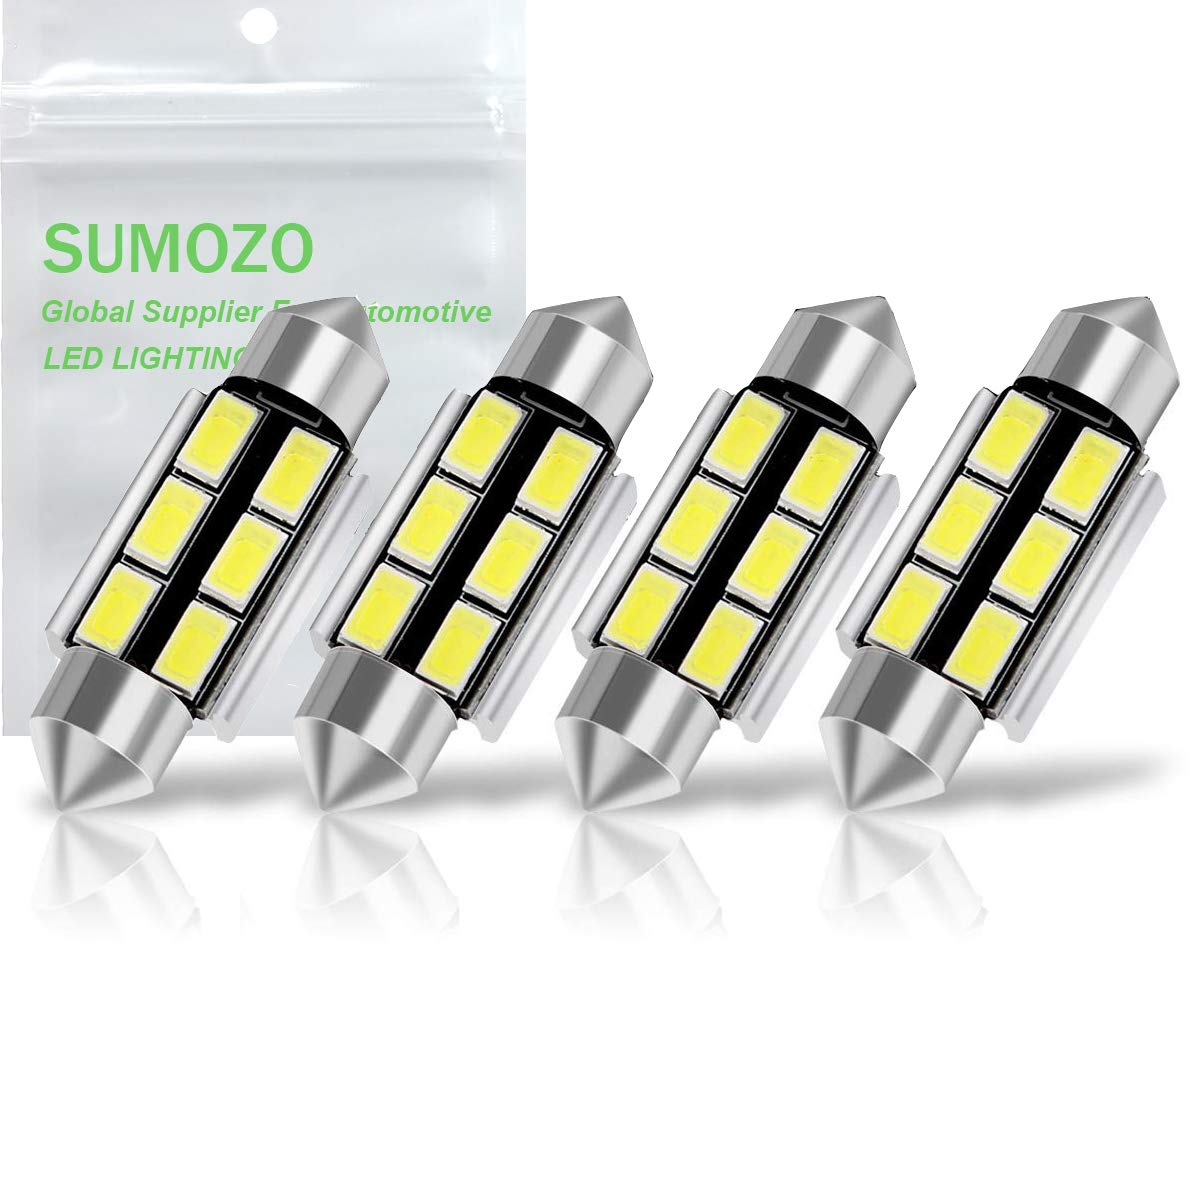 SUMOZO 41MM 42MM Festoon C5W Led Bulbs 578 6411 212-2 569 211-2 6-SMD 5730 Canbus Error Free Car Interior Dome Map Door Lights 42mm 6000K Xenon White Pack of 4